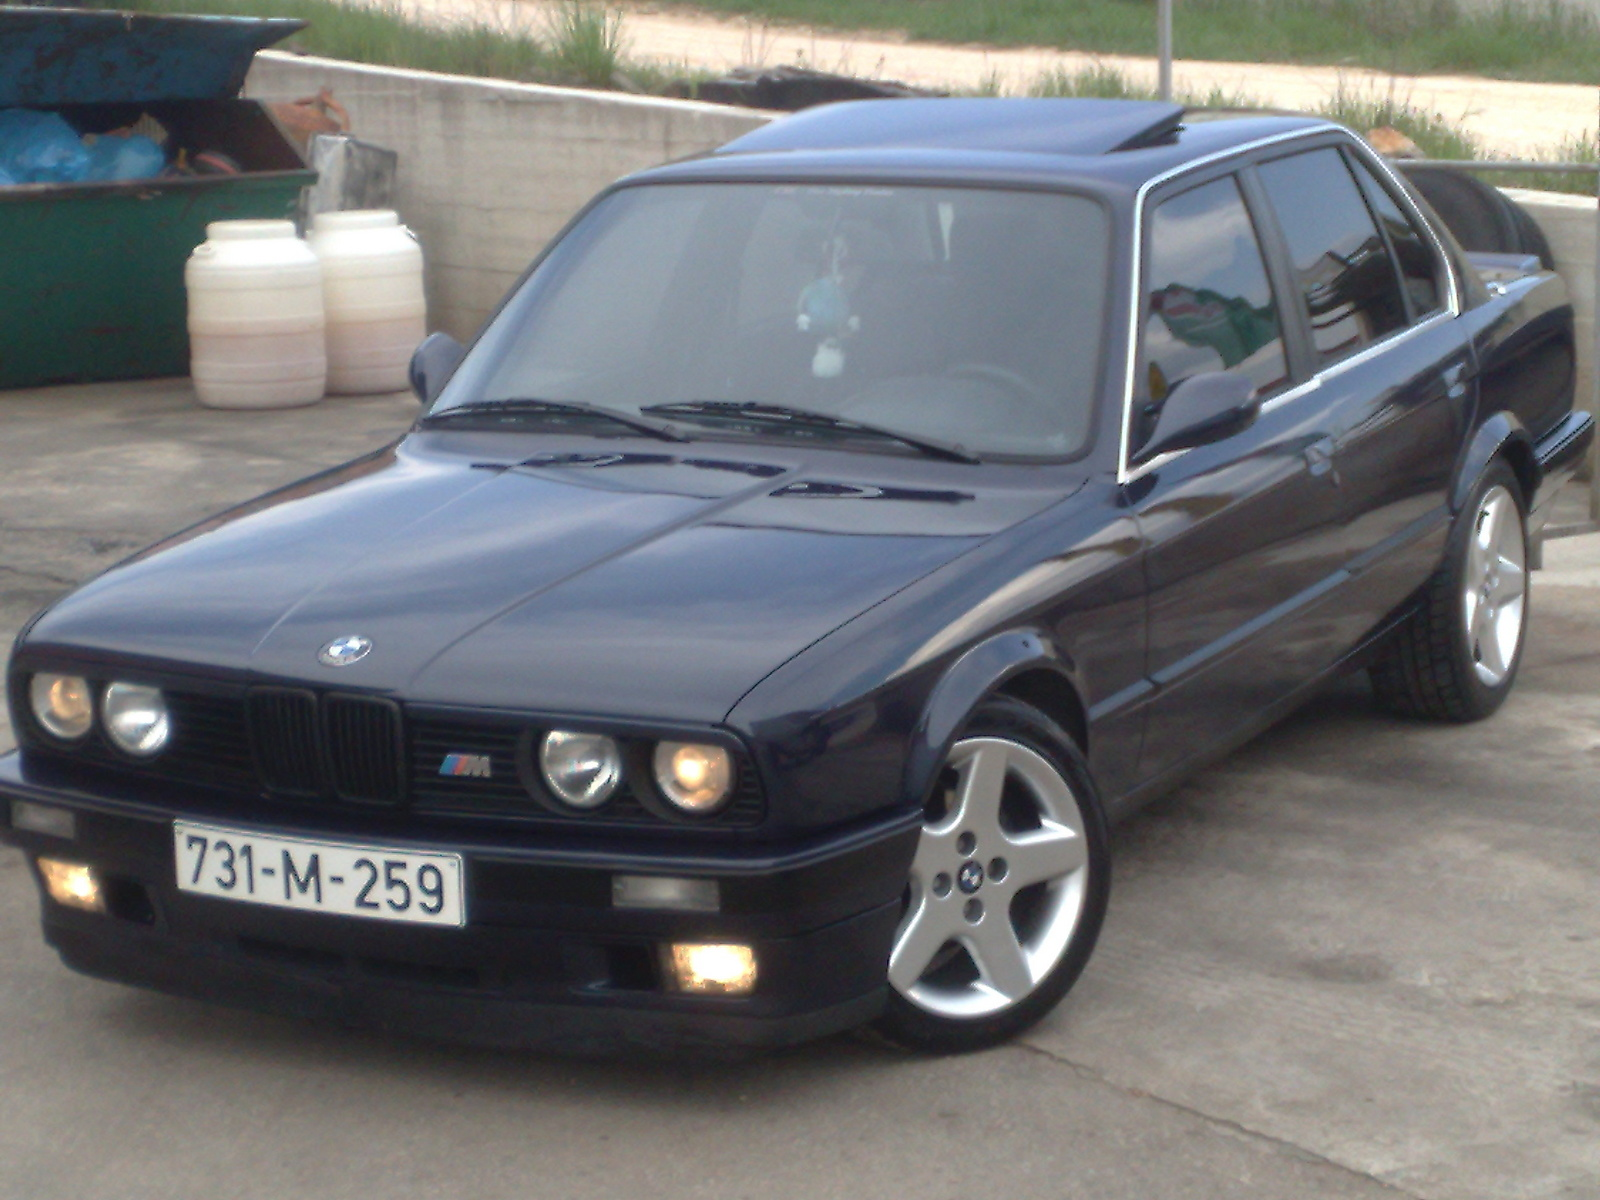 BMW 3 series 325is 1990 photo - 10